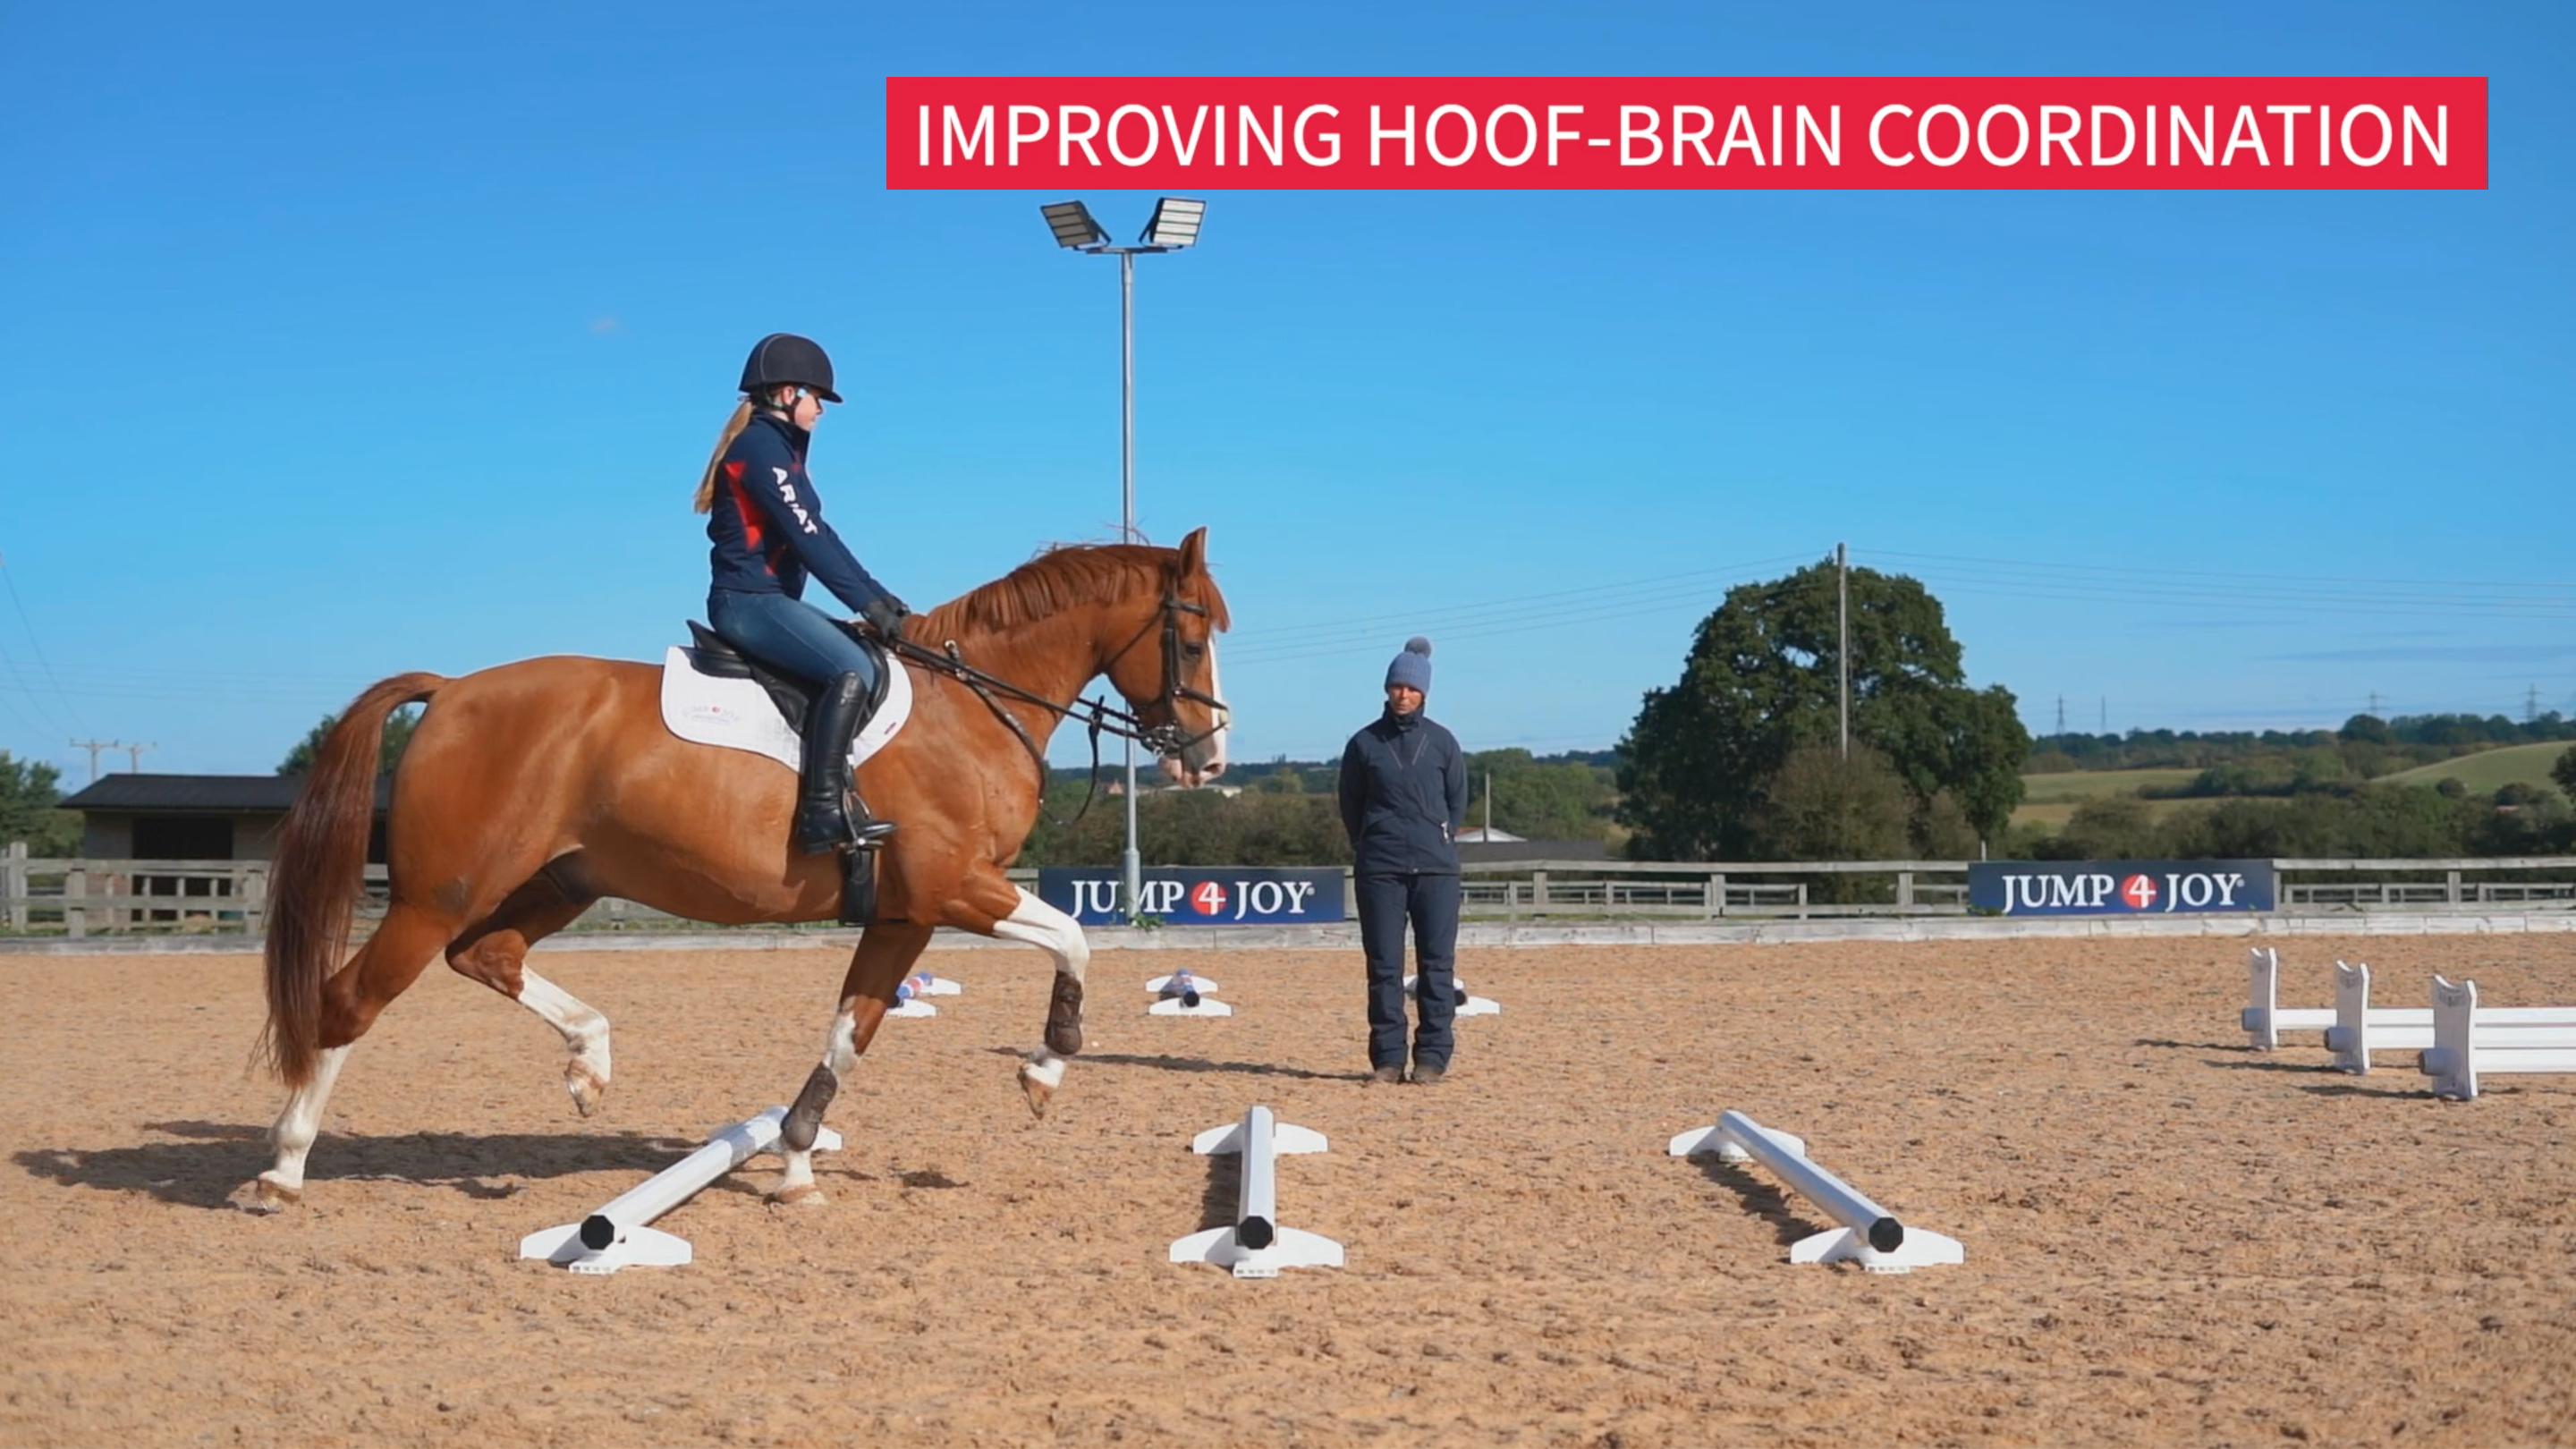 Improving Hoof-Brain Coordination